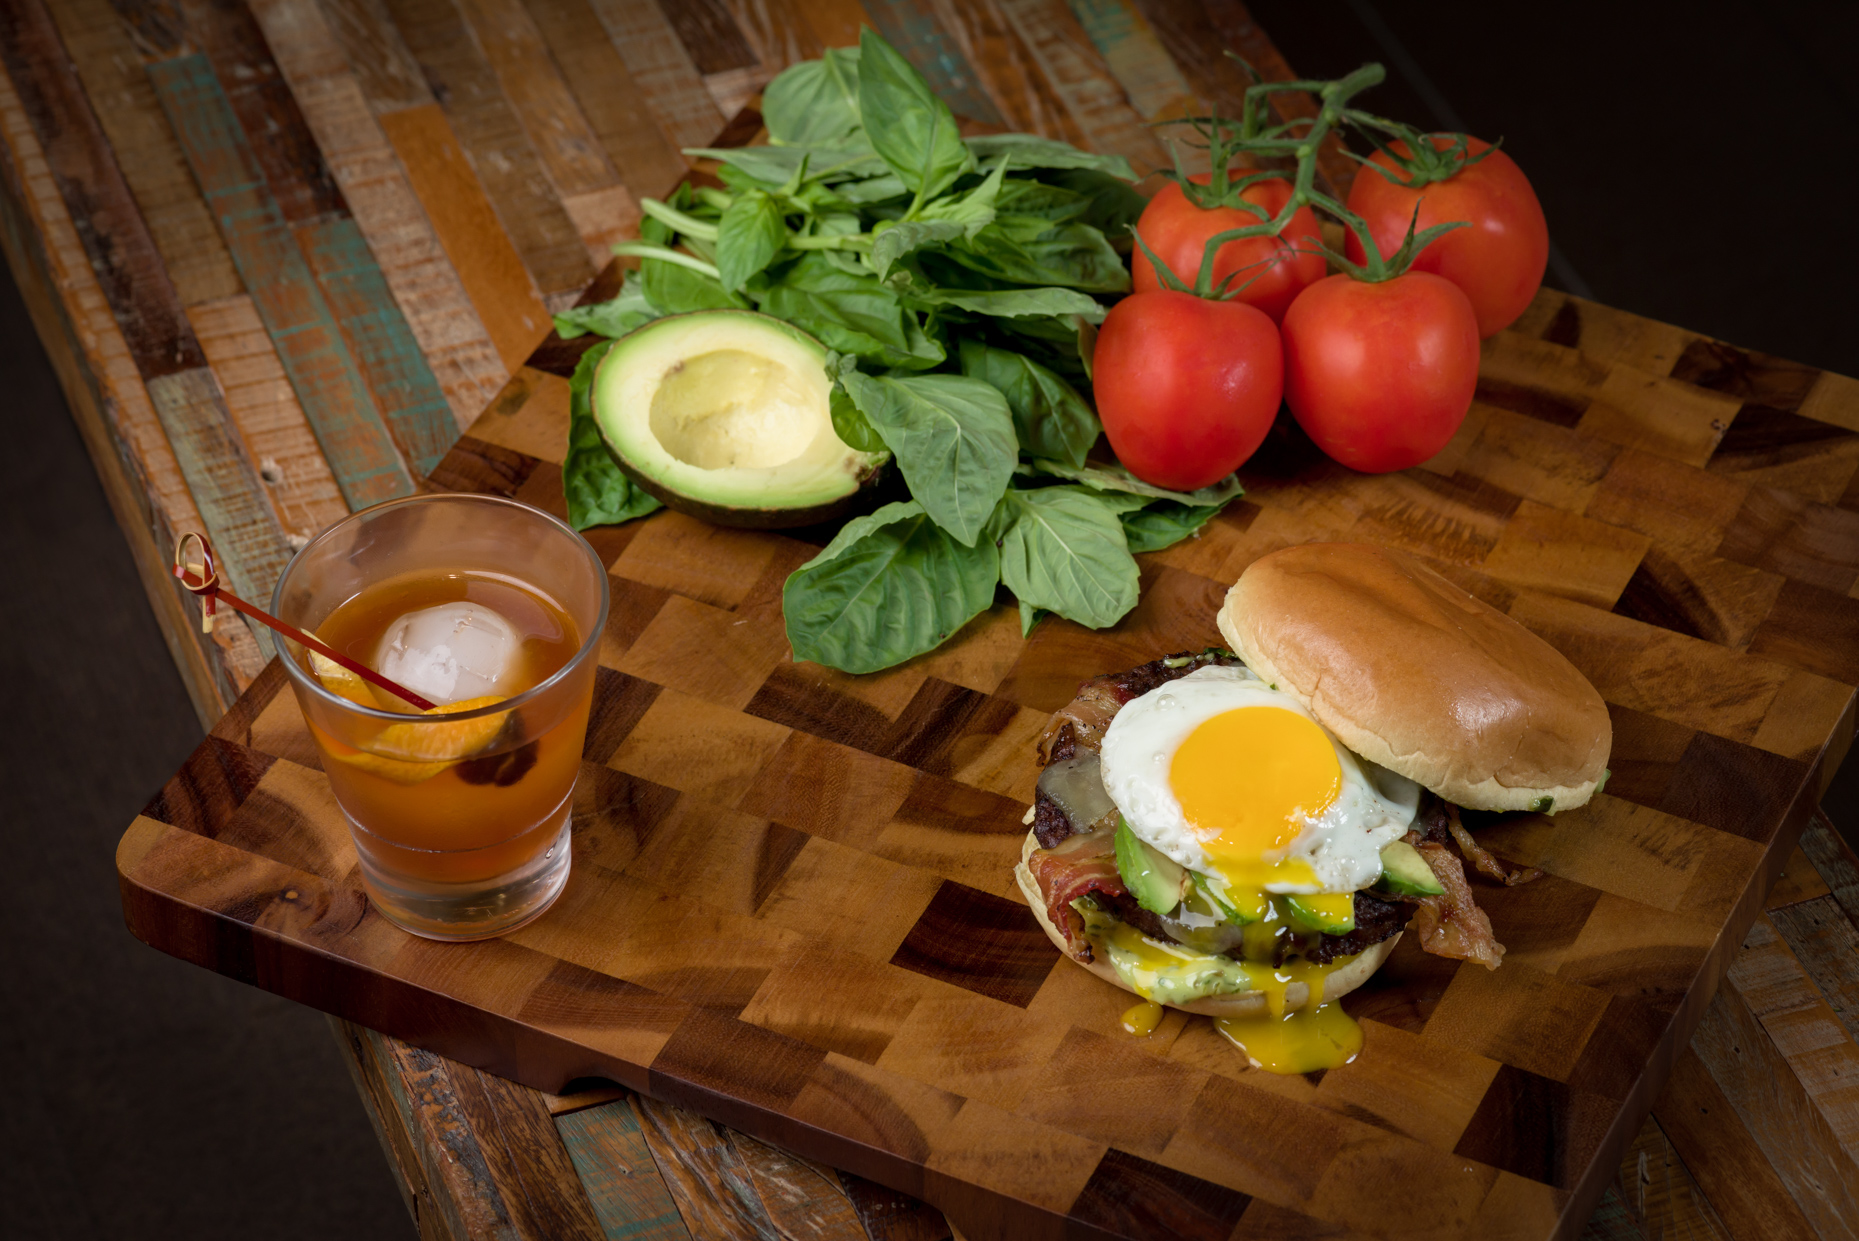 Austin-Commercial-Photographers-Food-Texas-Moviehouse-Eatery-Old-Fashioned-Farmhouse-Burger-Fried-Egg